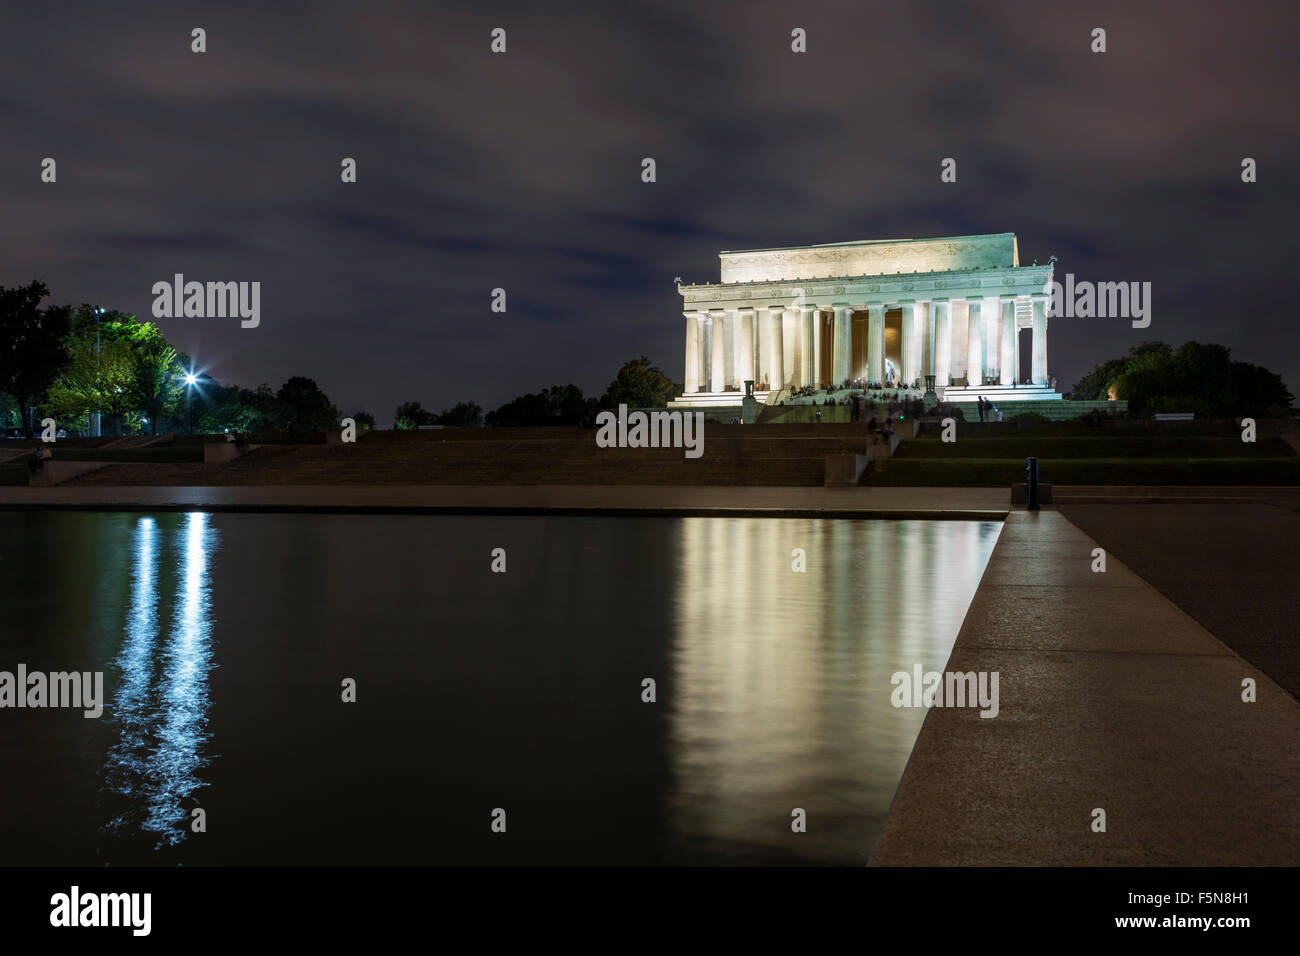 The Lincoln Memorial in Washington DC - Stock Image